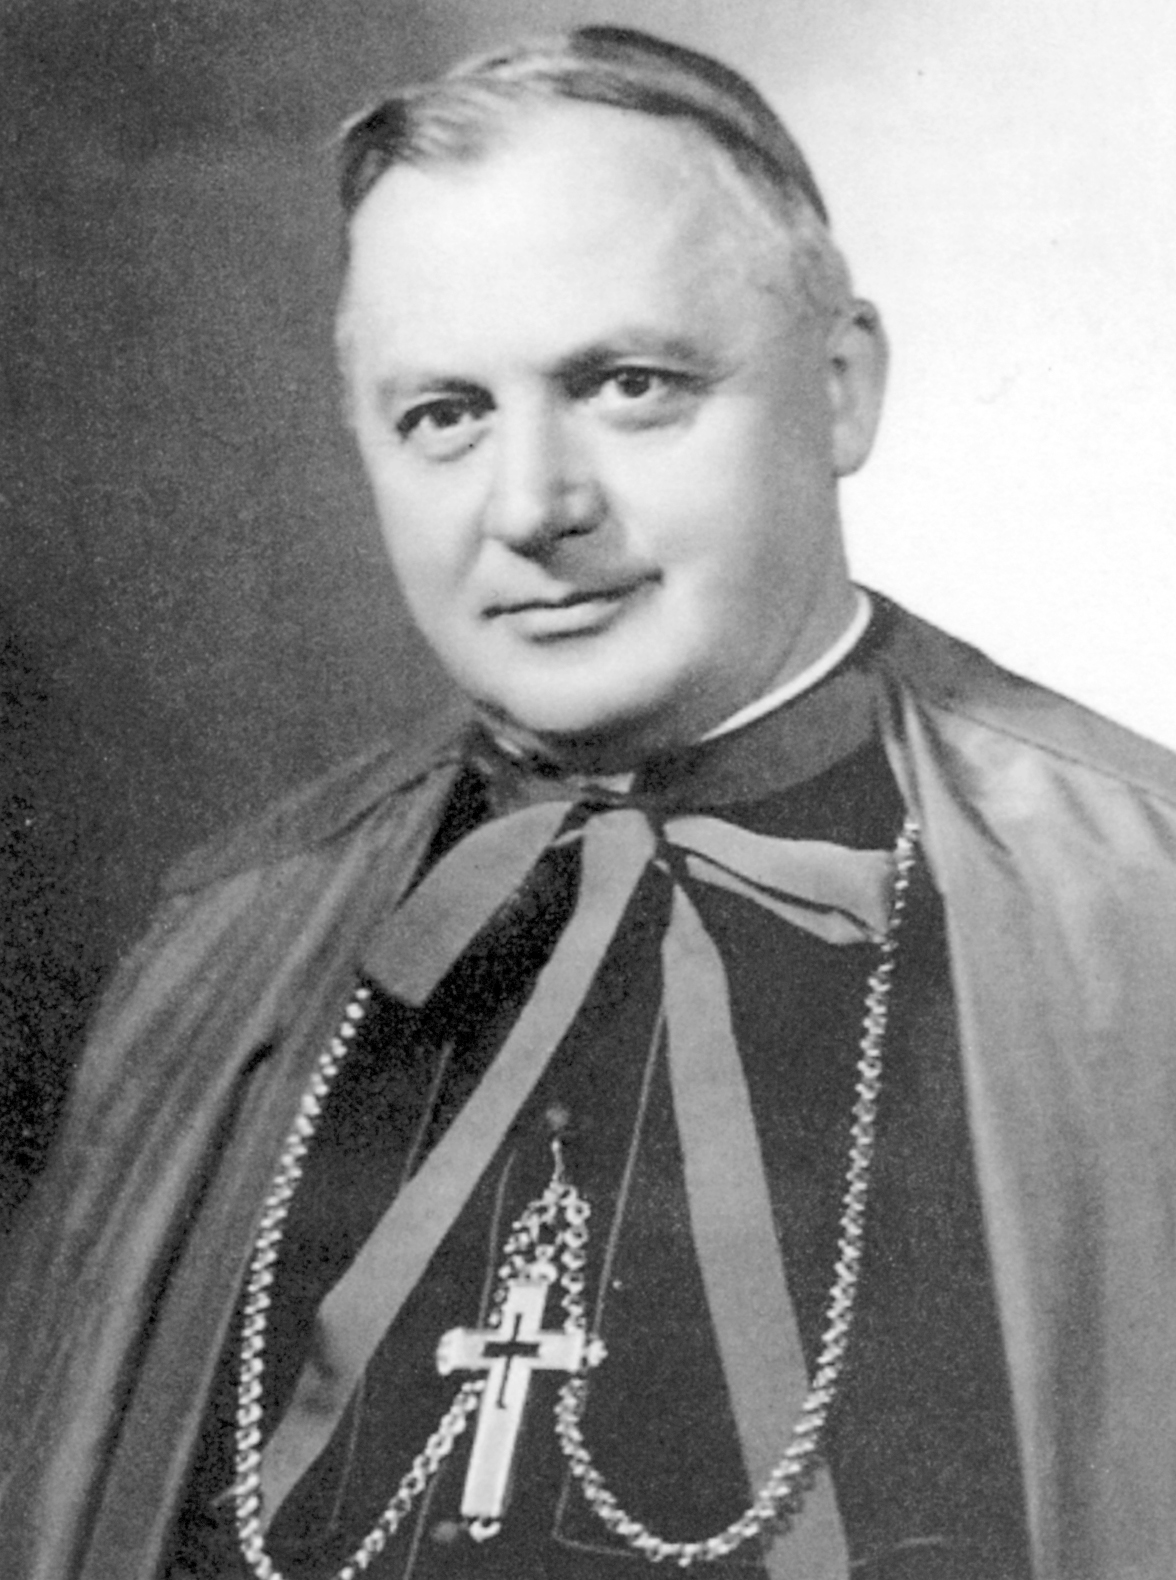 El rector del Seminario Pontificio Lombardo salv a 65 judos en 1943